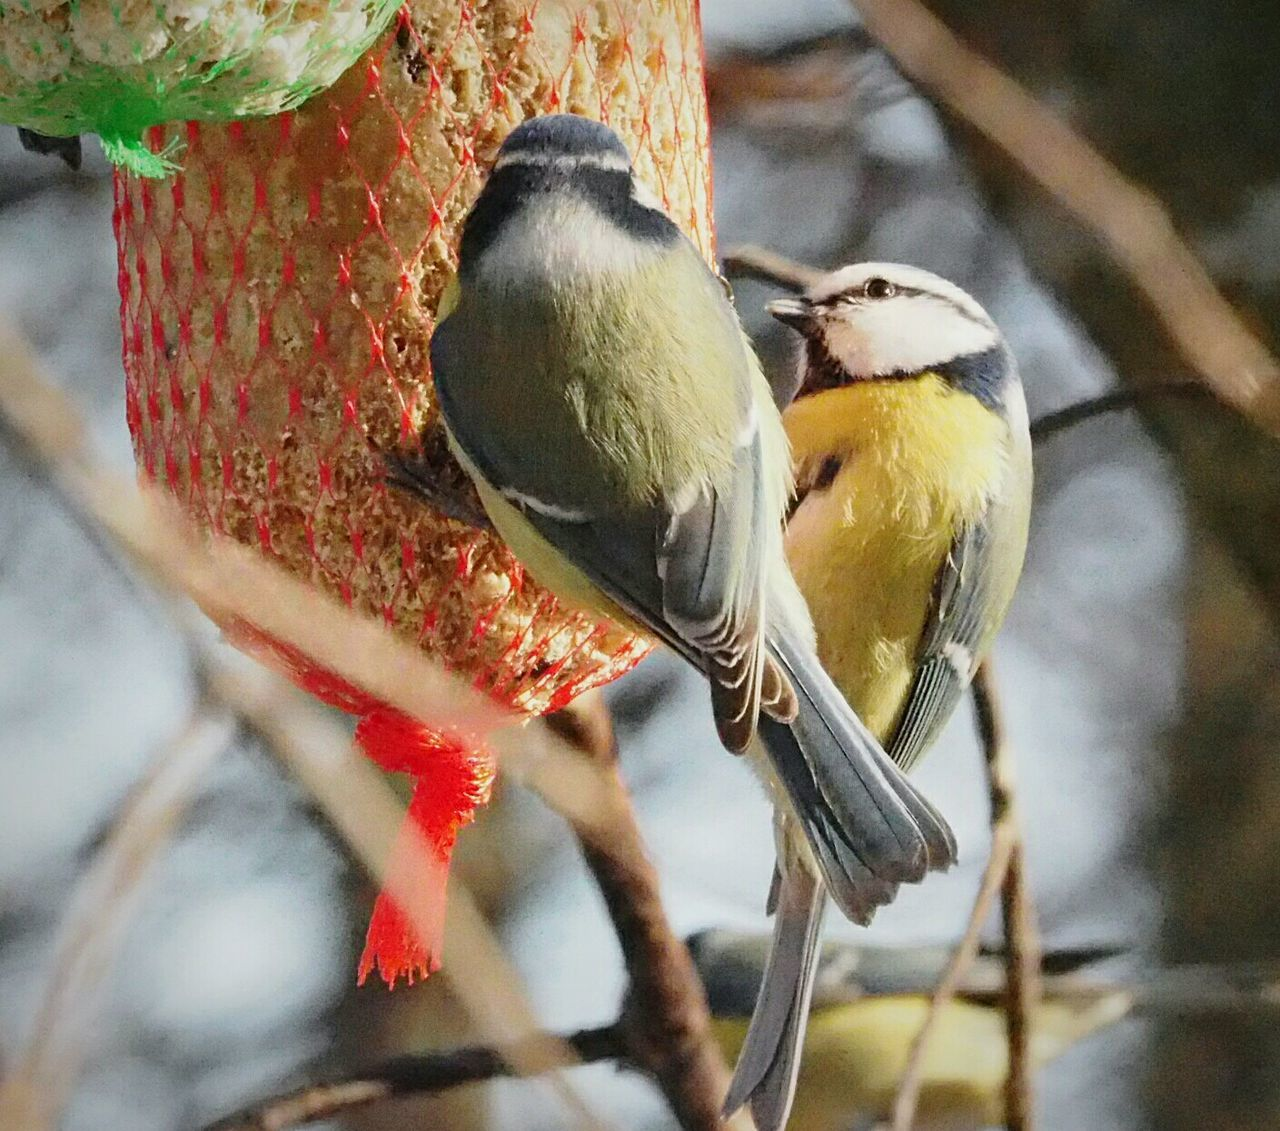 Bird Animal Themes Animals In The Wild Focus On Foreground Animal Wildlife Close-up Nature Food Tree Beauty In Nature Winter Nature Outside Animals In The Wild Tree Birdhouse Bird On A Branch Bird Feeder Winter Time Nature Bird Eating